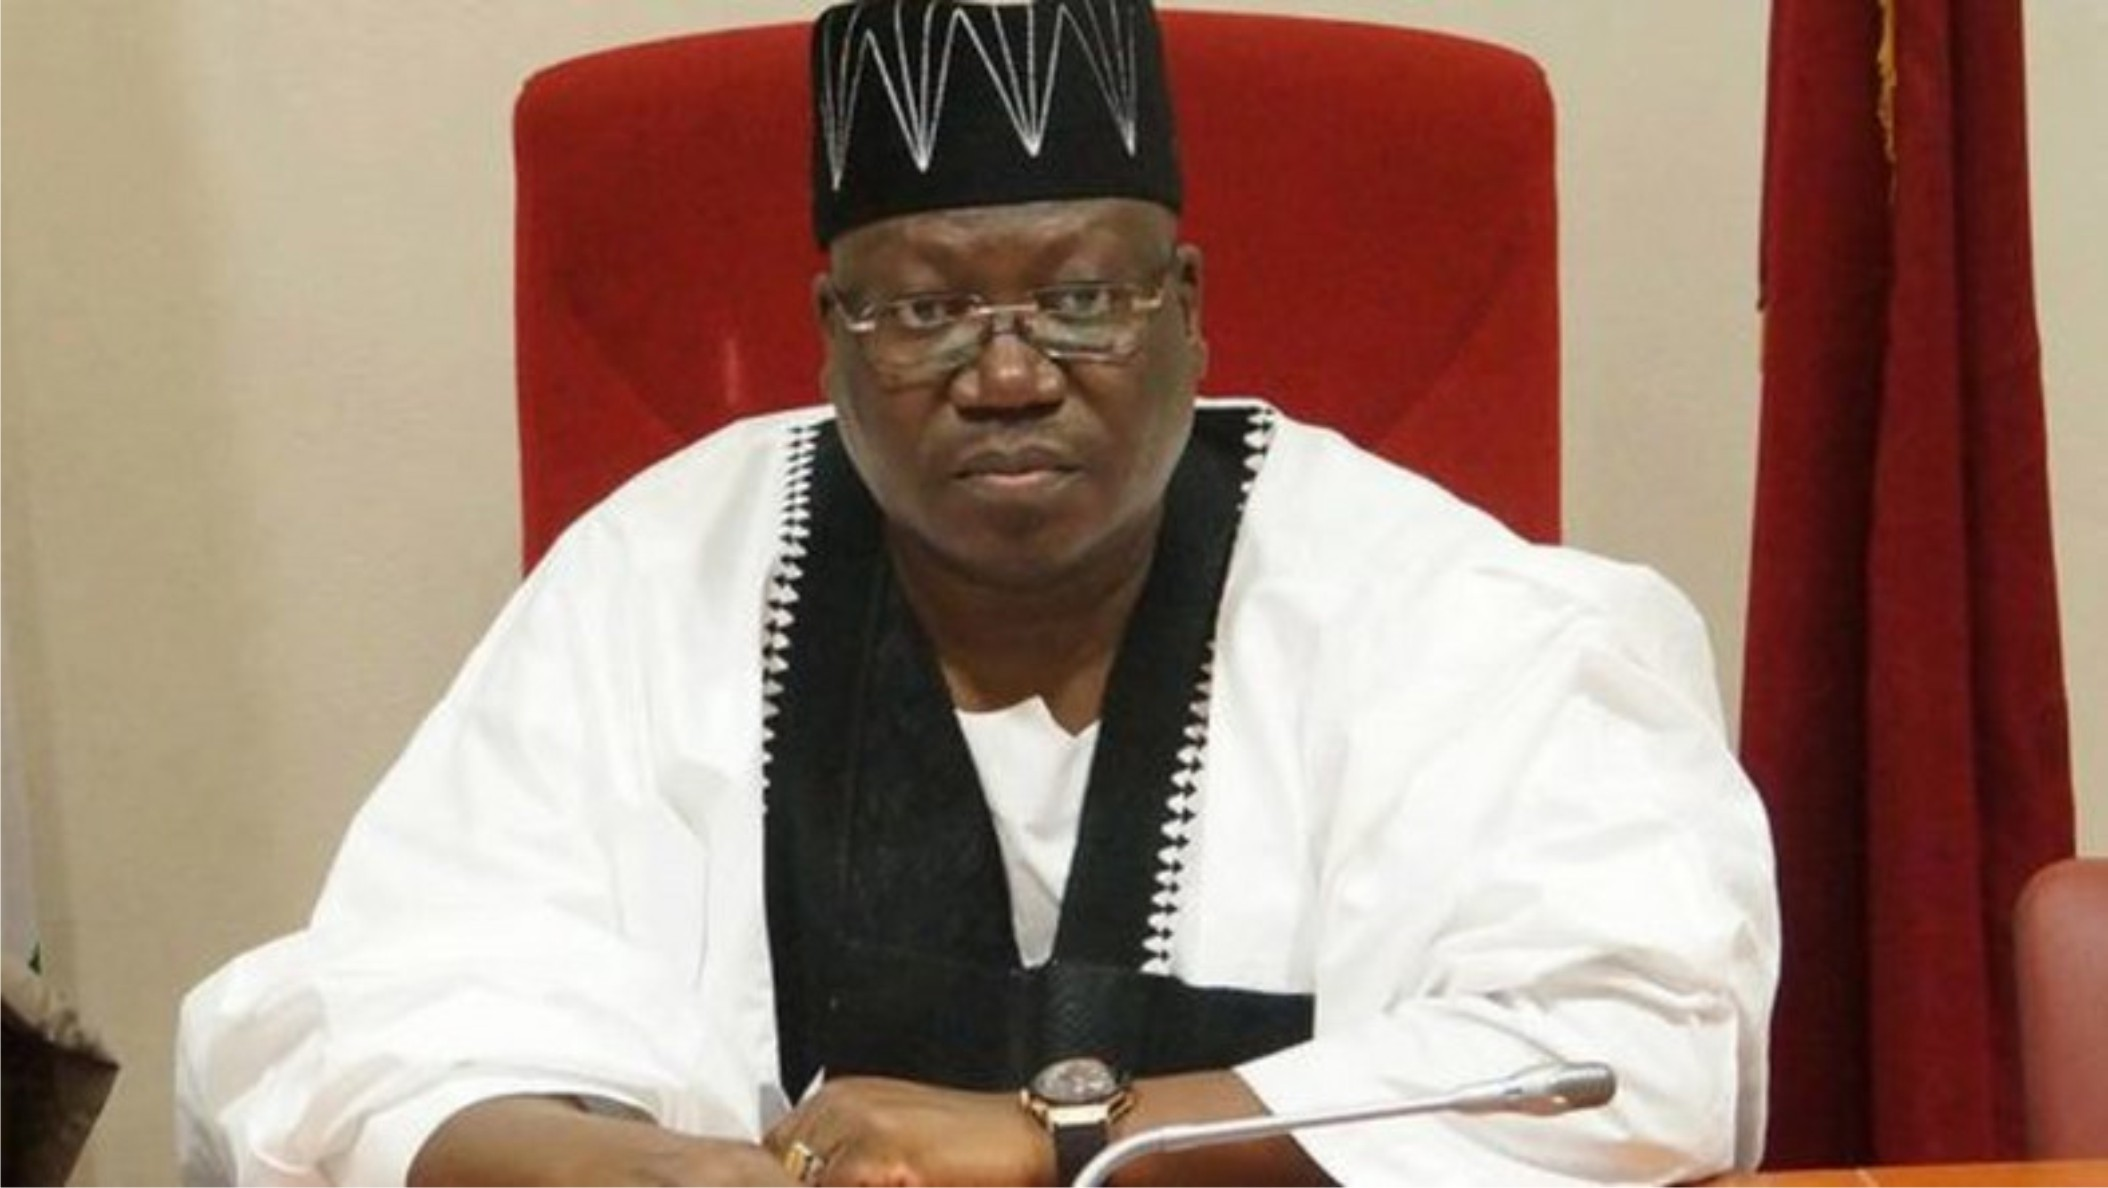 NASS remains committed to welfare of Nigerians -Lawan